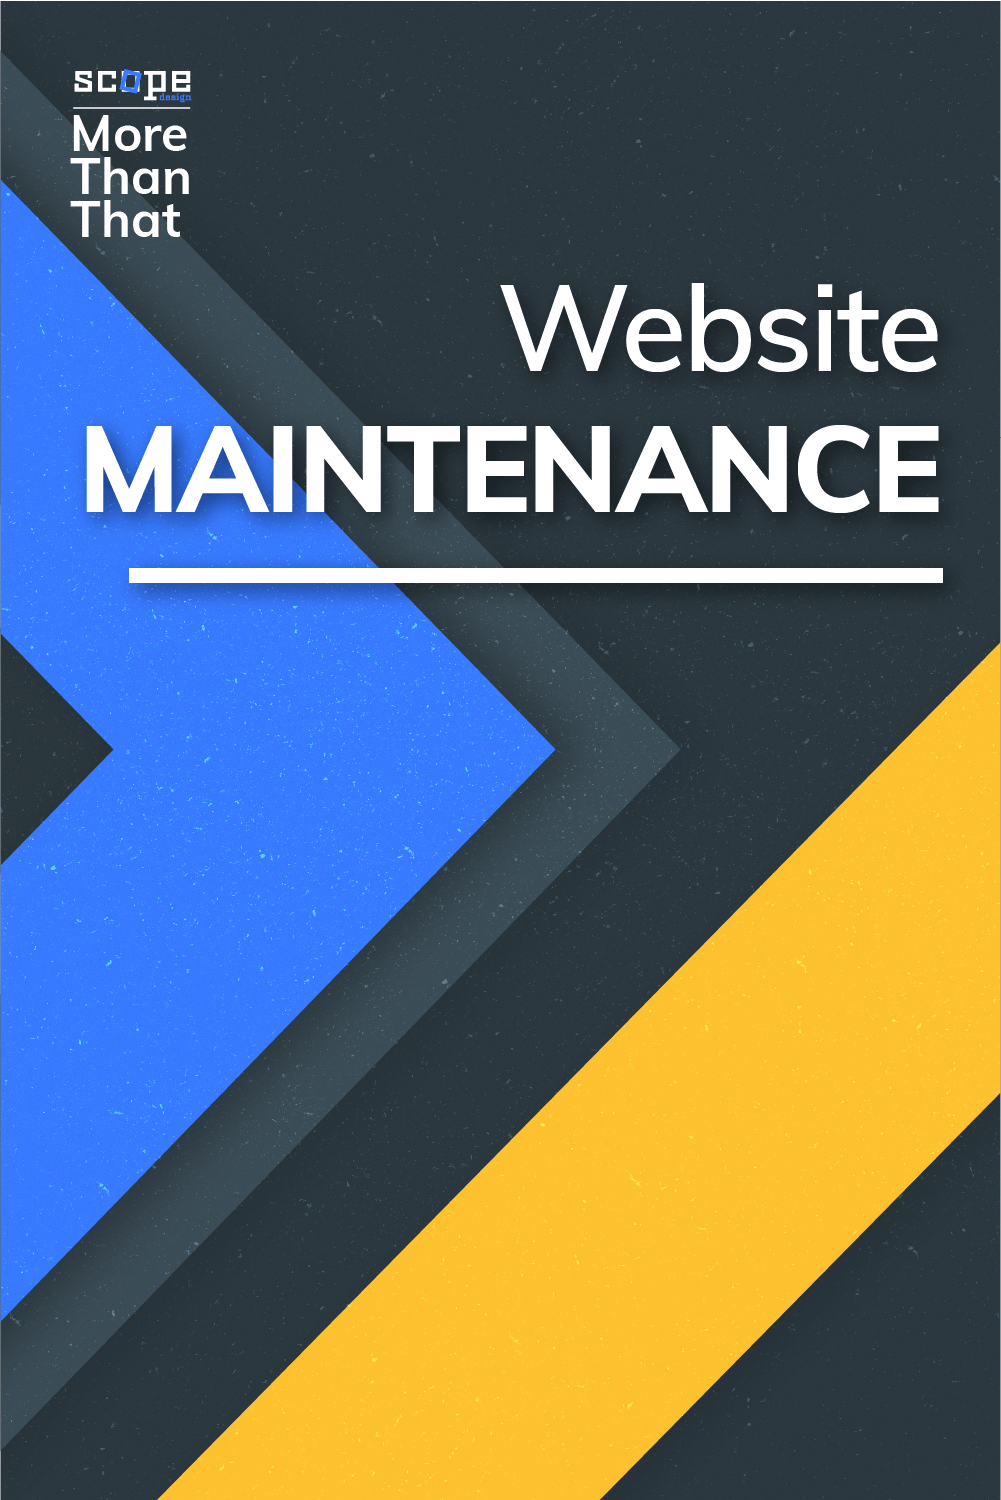 Having to do your website maintenance can be a pain. Sure, some people are prepared to do that, but most people should leave it to the experts, like us! via @scopedesign